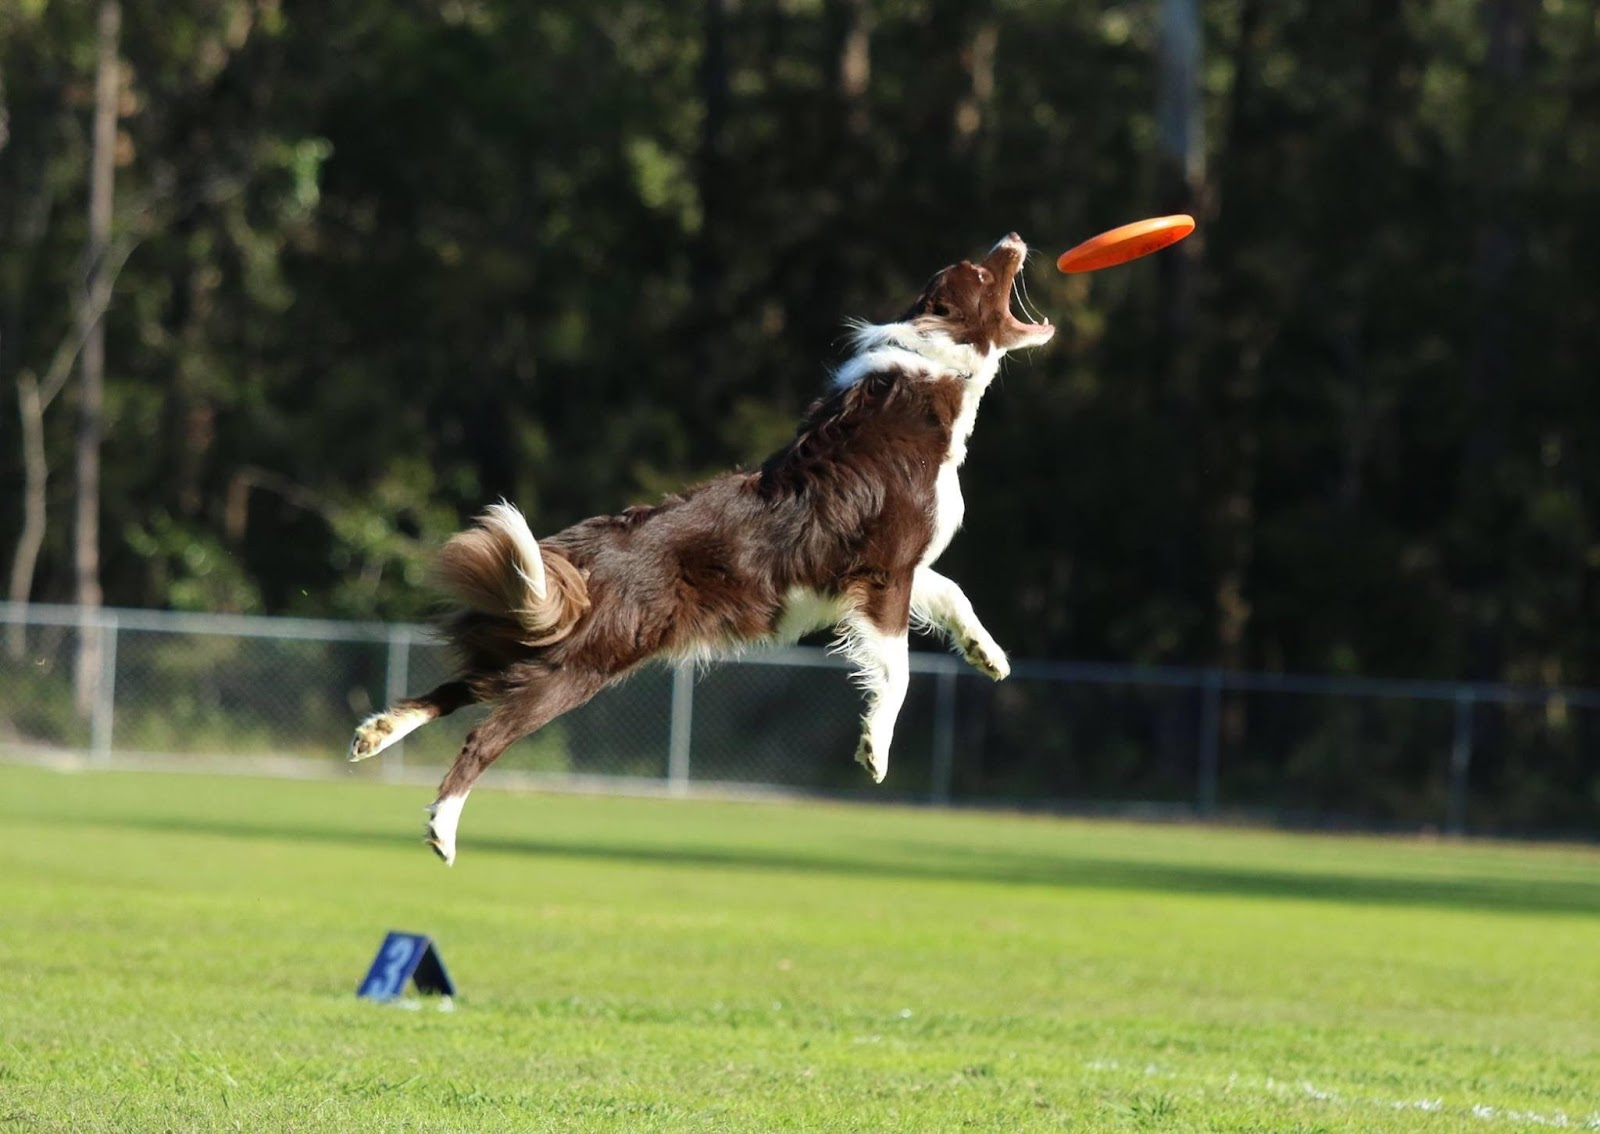 Runkle The Border Collie Leaping To Retrieve A Disc